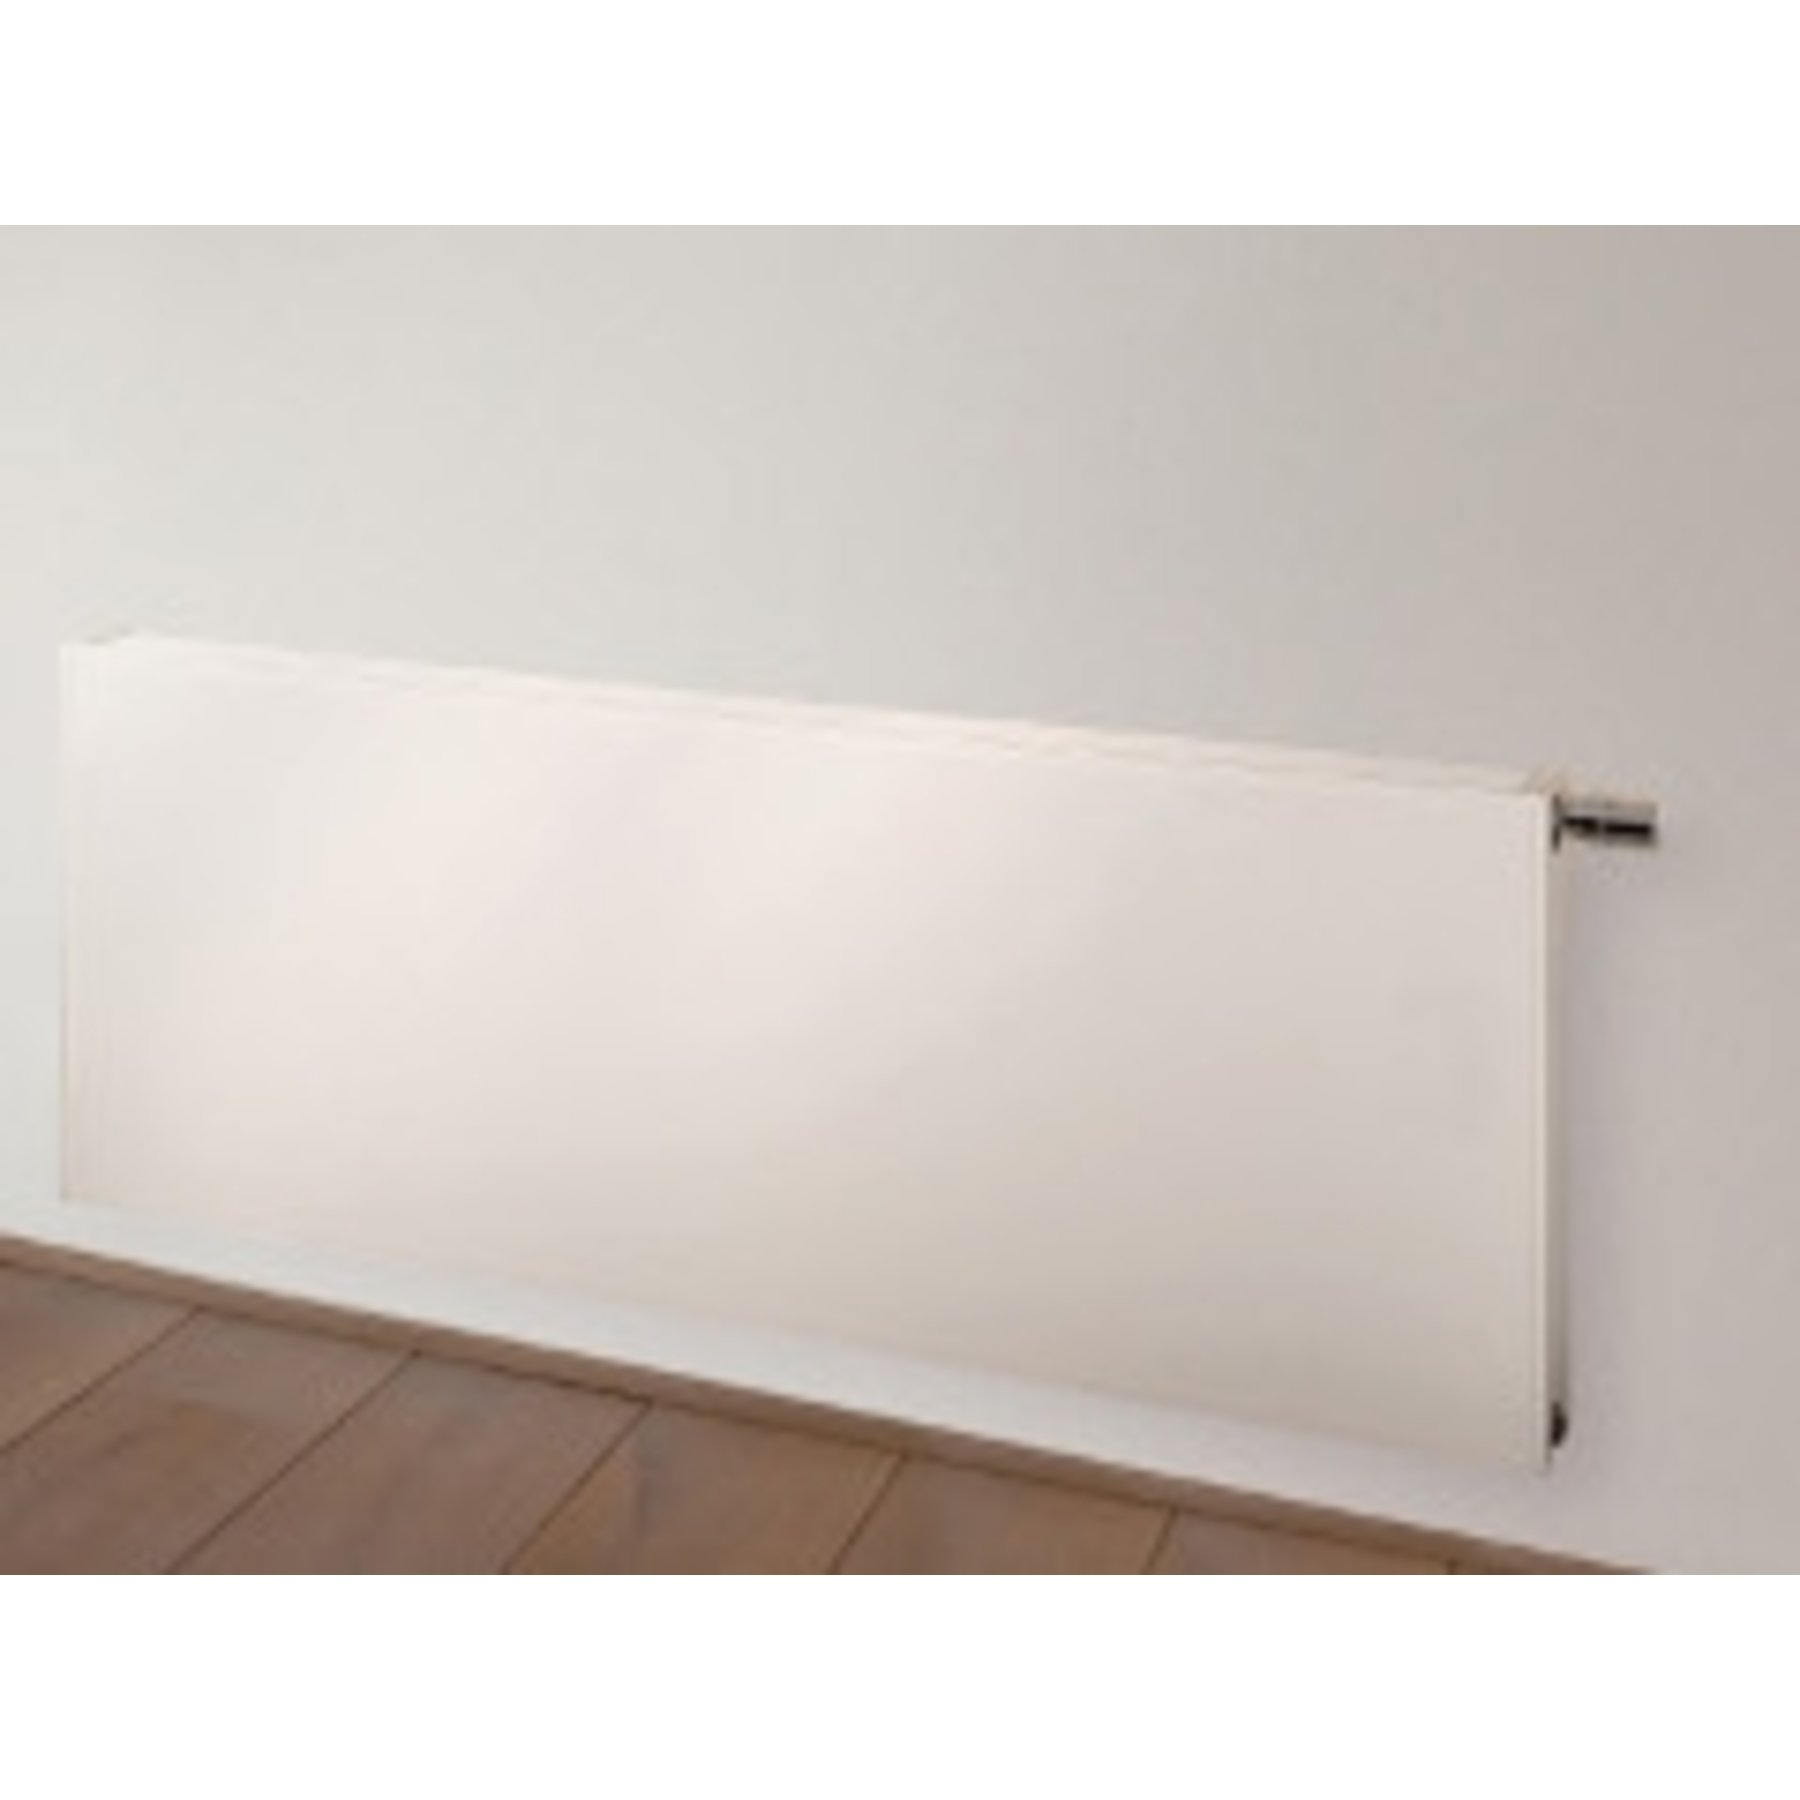 Vasco Flatline Paneelradiator type 21 900x600mm 1067W vlak wit structuur (S600)